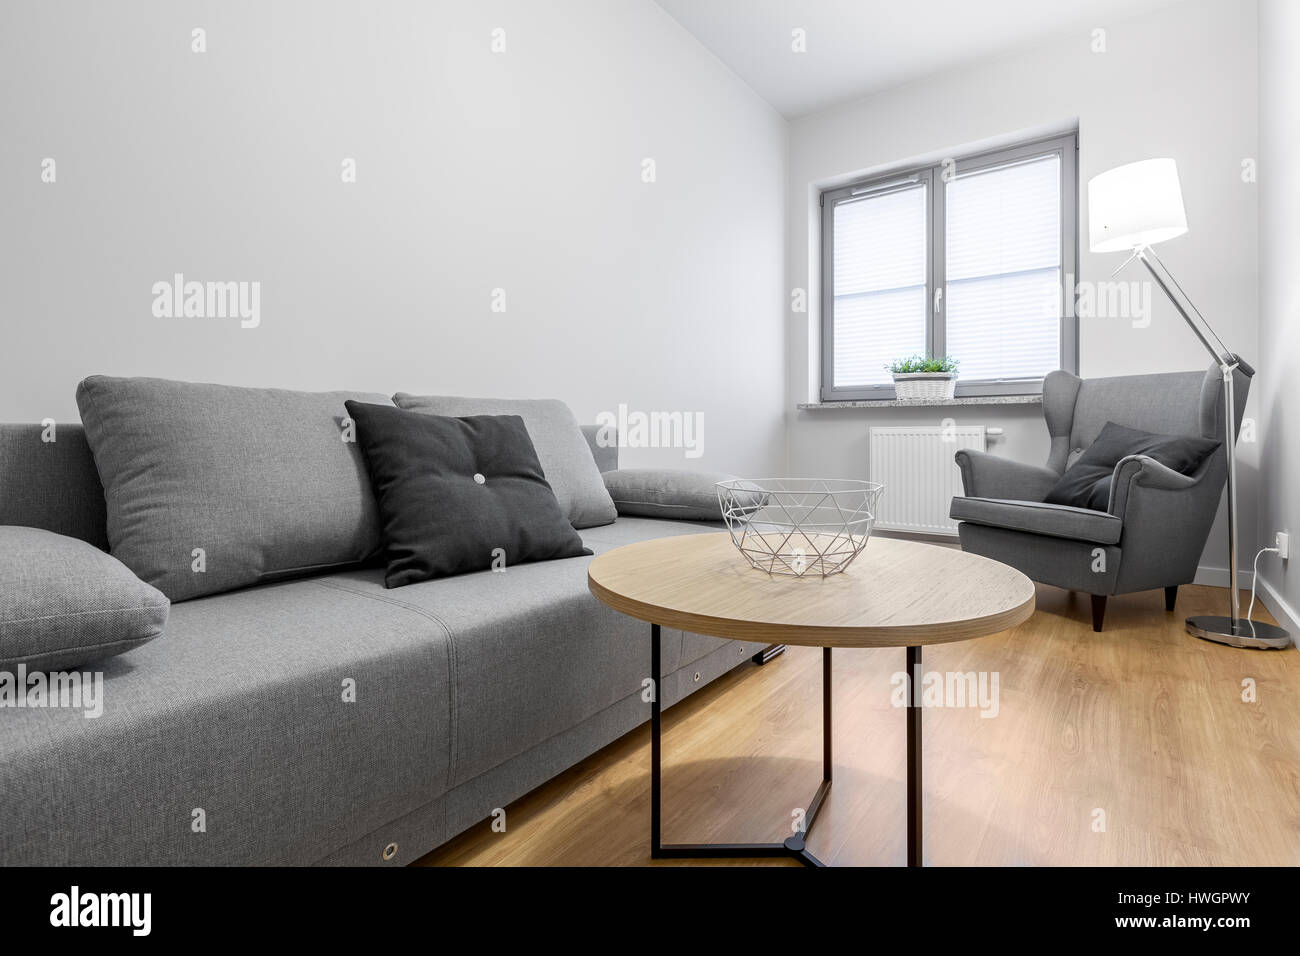 contemporary lounge gray sofa wall stockfotos contemporary lounge gray sofa wall bilder alamy. Black Bedroom Furniture Sets. Home Design Ideas